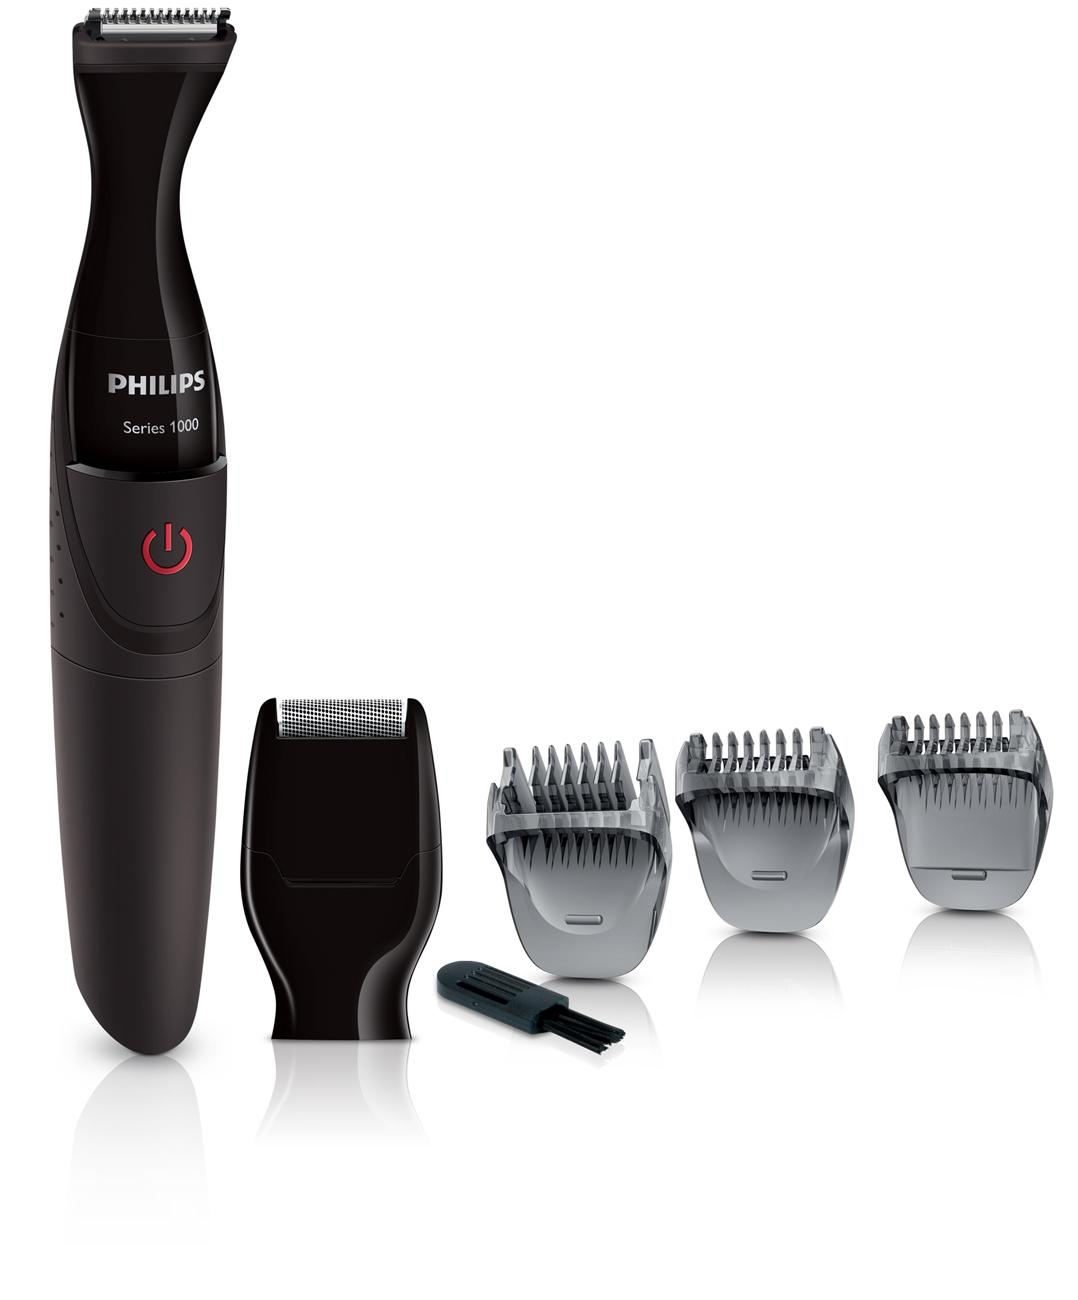 philips nose and ear trimmer series 1000 mg1100 16 beauty. Black Bedroom Furniture Sets. Home Design Ideas